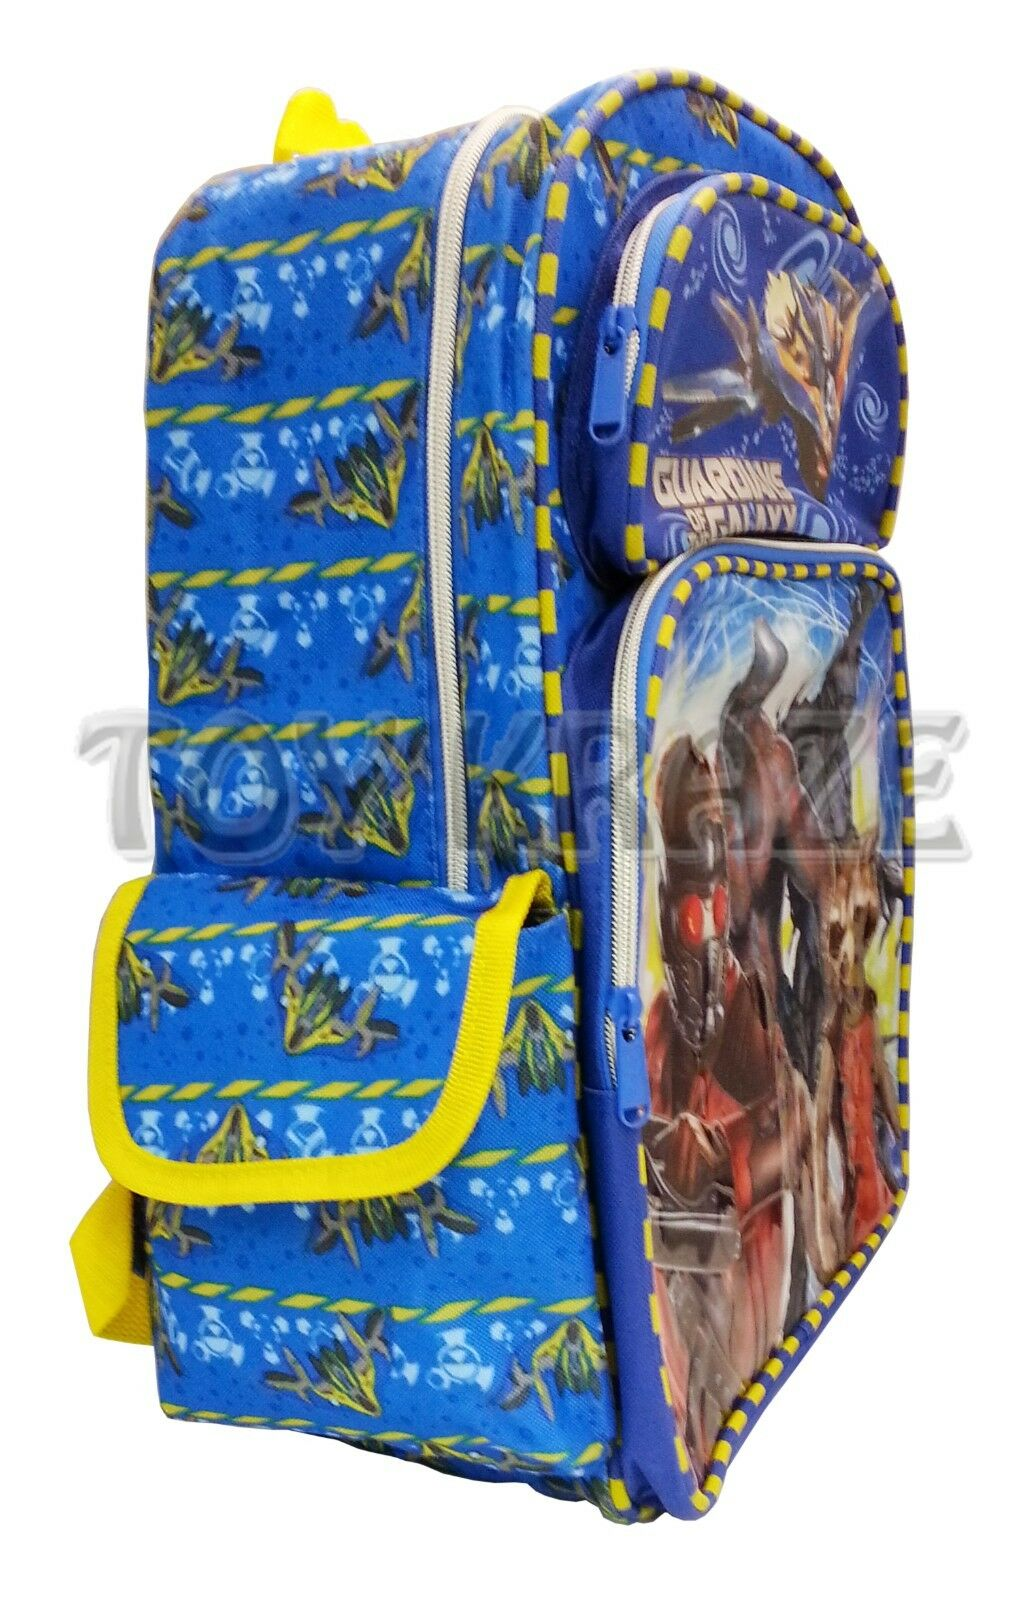 Guardians of The Galaxy Backpack Blue Colorful School Book Bag ...